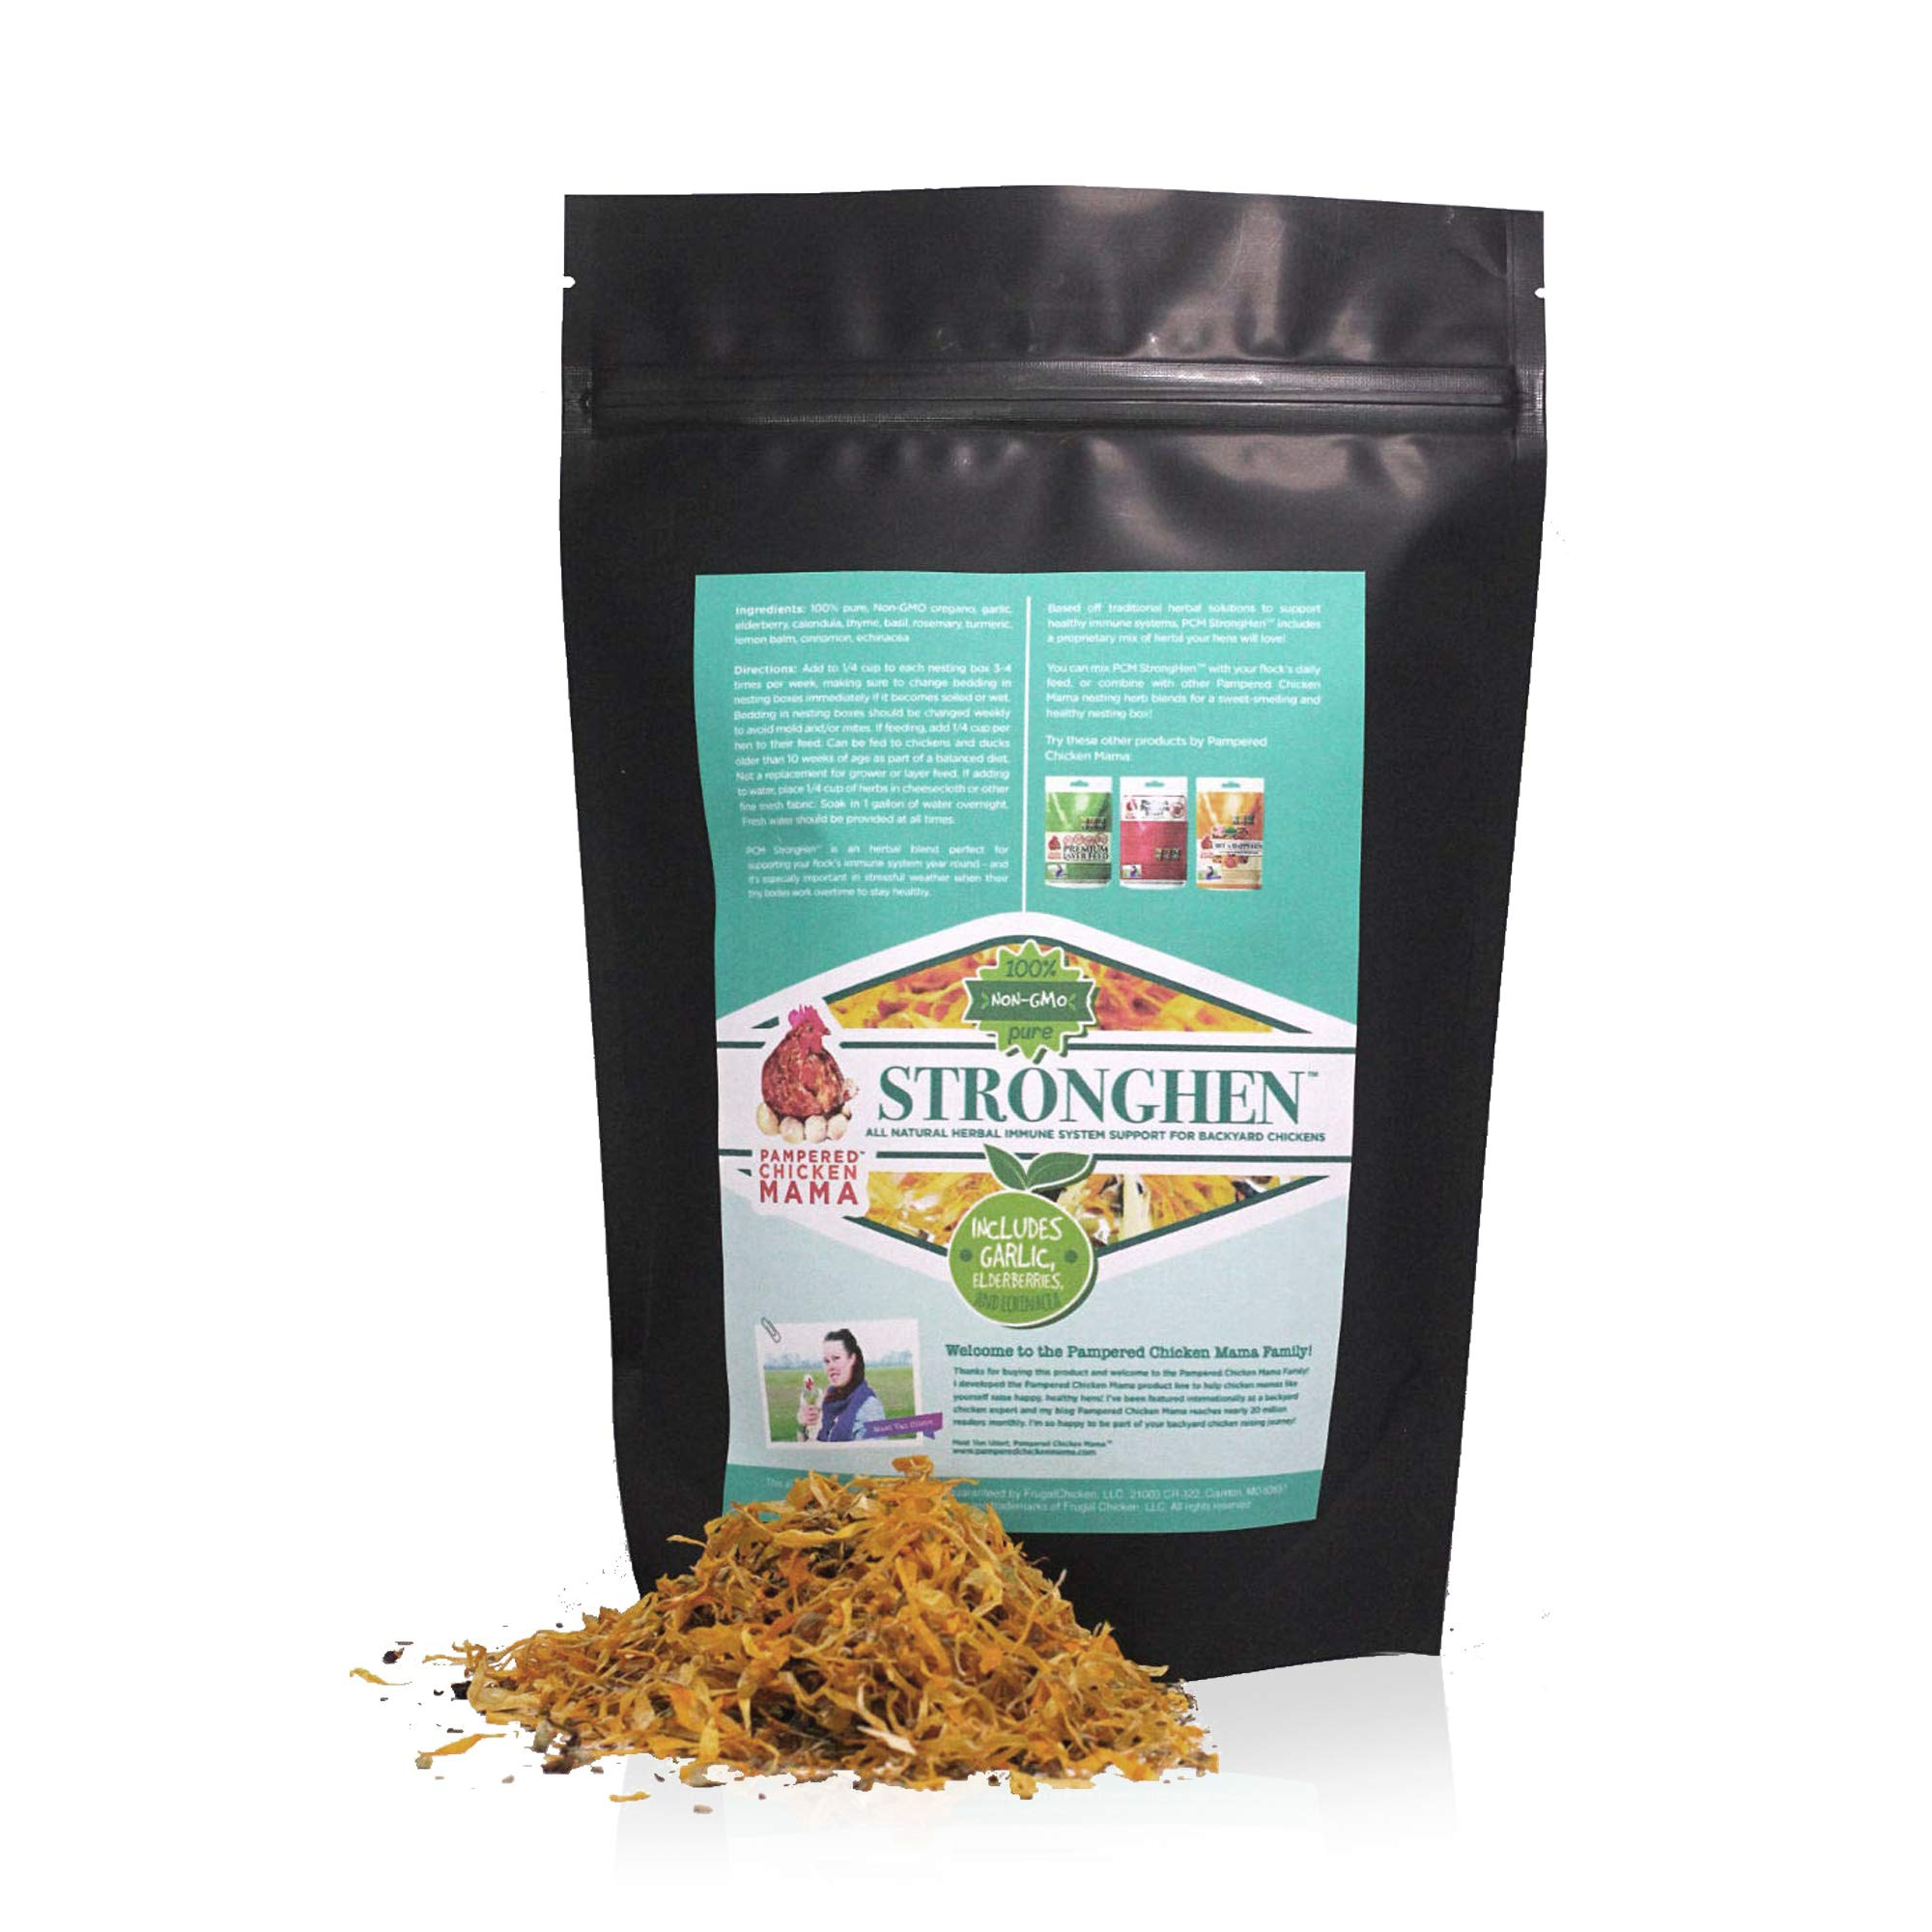 Backyard Chicken Nesting Herbs All Natural Feeding Supplement to Support Healthy Immune Systems (StrongHen) (10 Ounces) by Pampered Chicken Mama